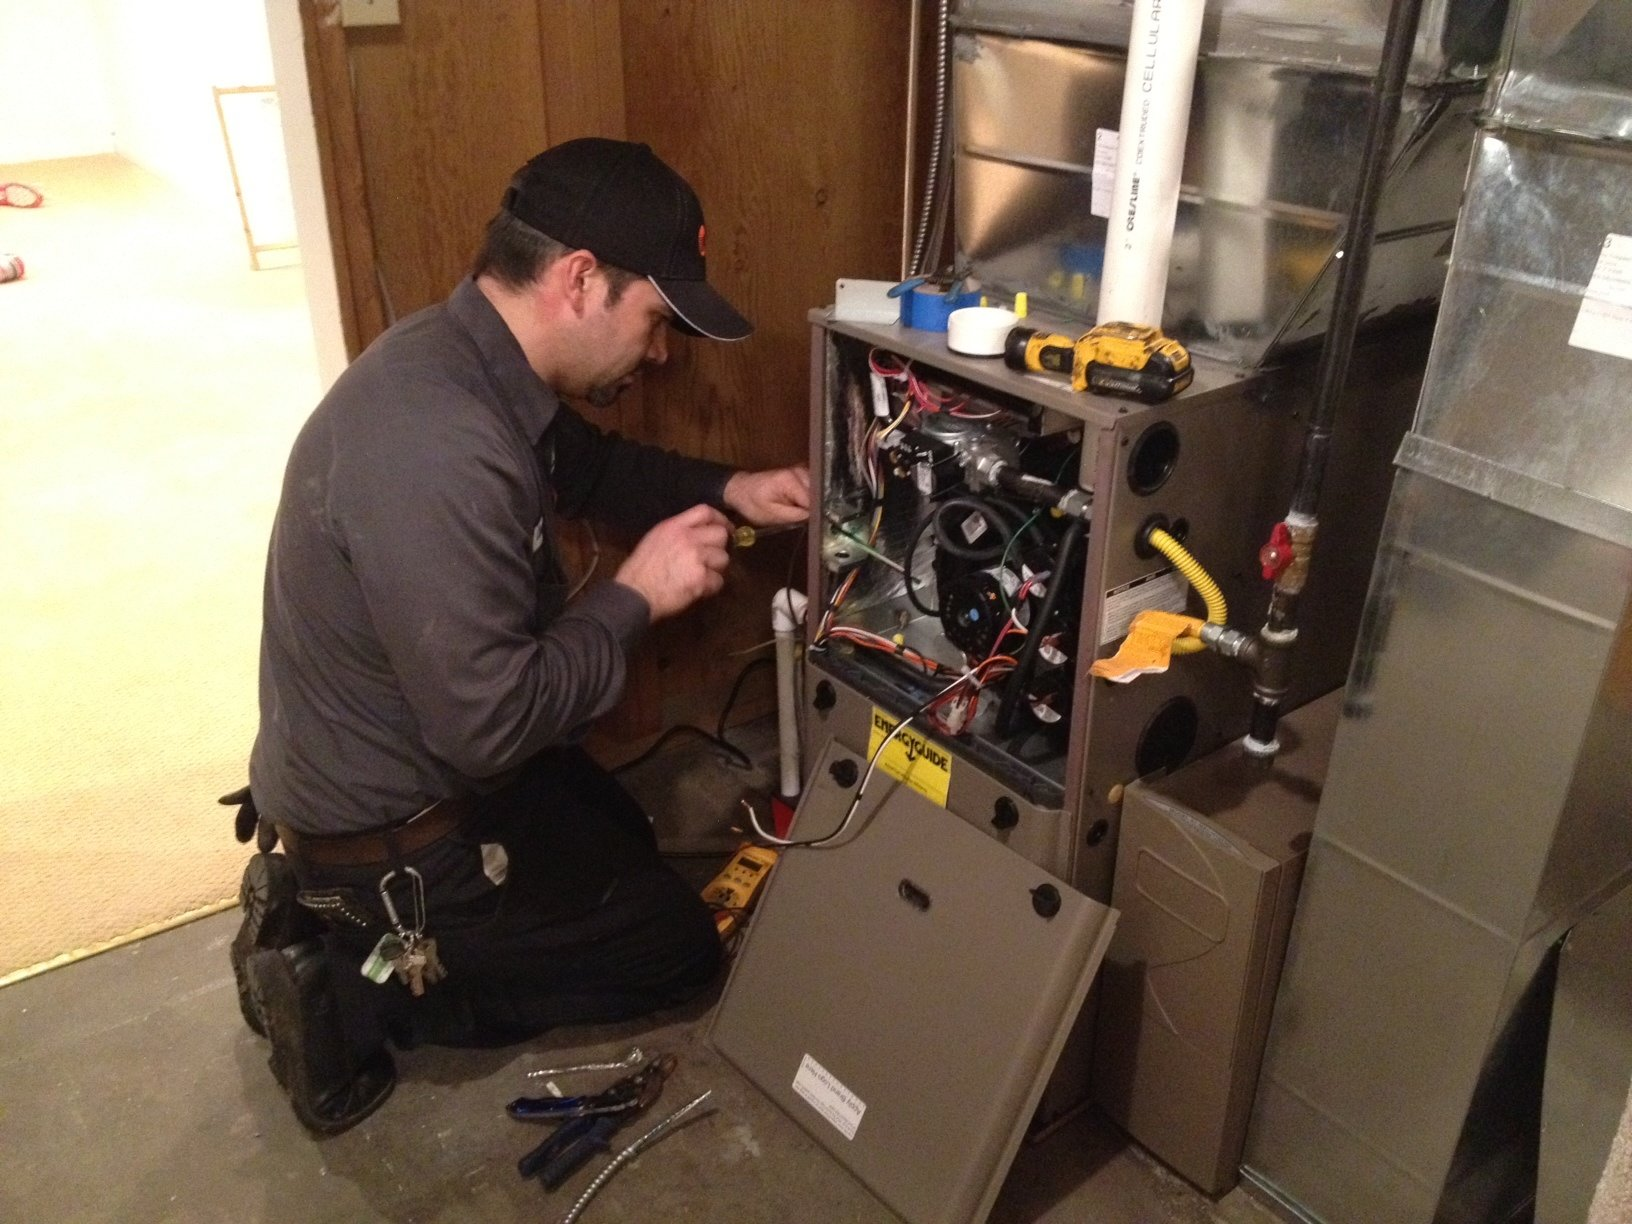 How Often Does A Gas Furnace Need Maintenance?. Attorneys For Children With Disabilities. Best First Class Airlines Online Phone Dialer. Occupational Therapy Accredited Schools. Houston Technical Schools Hyundai Sonata Wiki. Non Recourse Factoring Companies. Certificate In Sustainability. Swami Property Management Dishnet Speed Test. Flights From Auckland To San Francisco